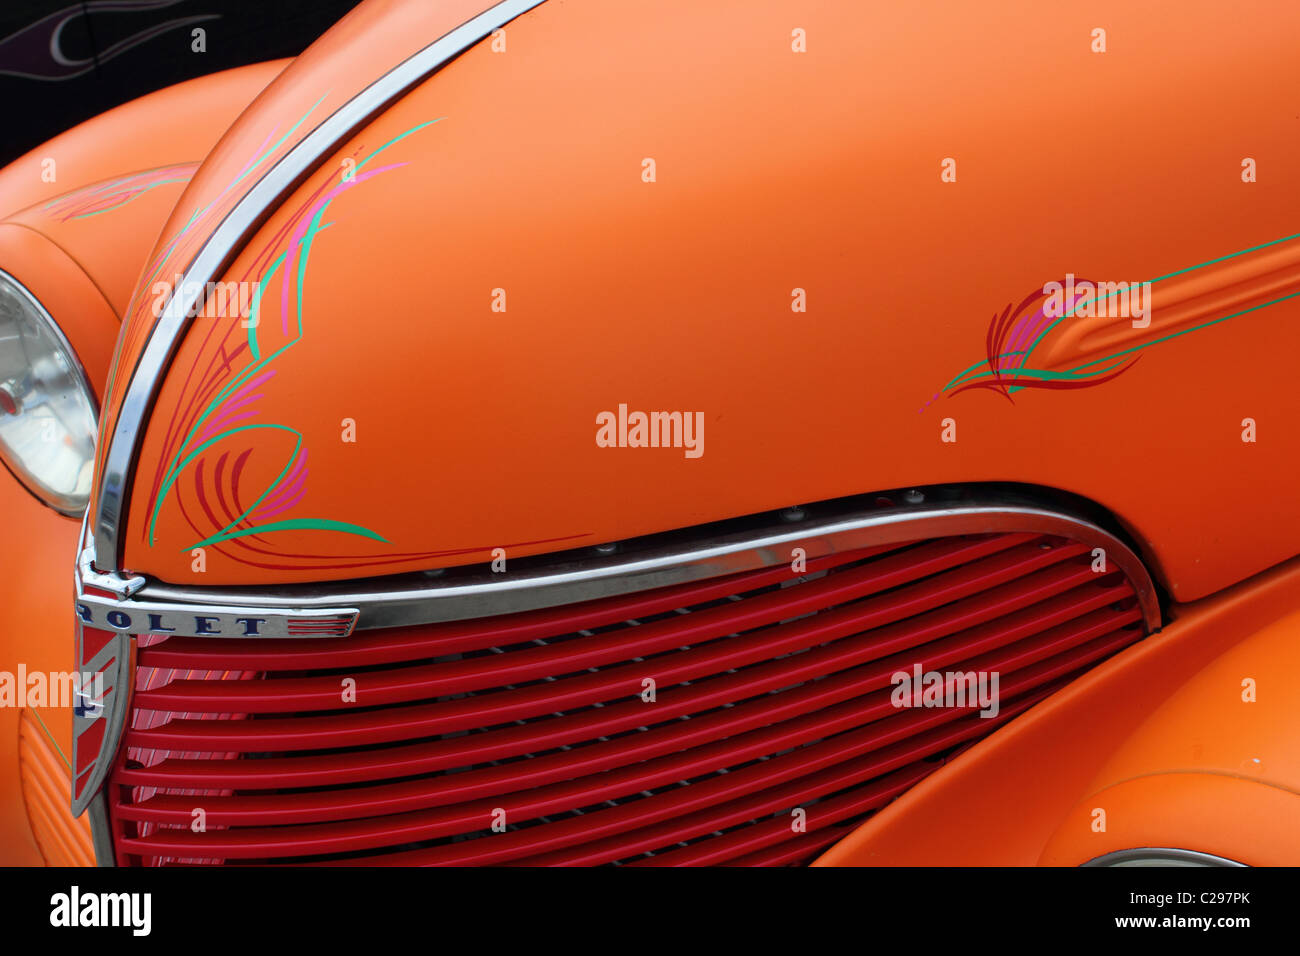 Pinstriping High Resolution Stock Photography And Images Alamy